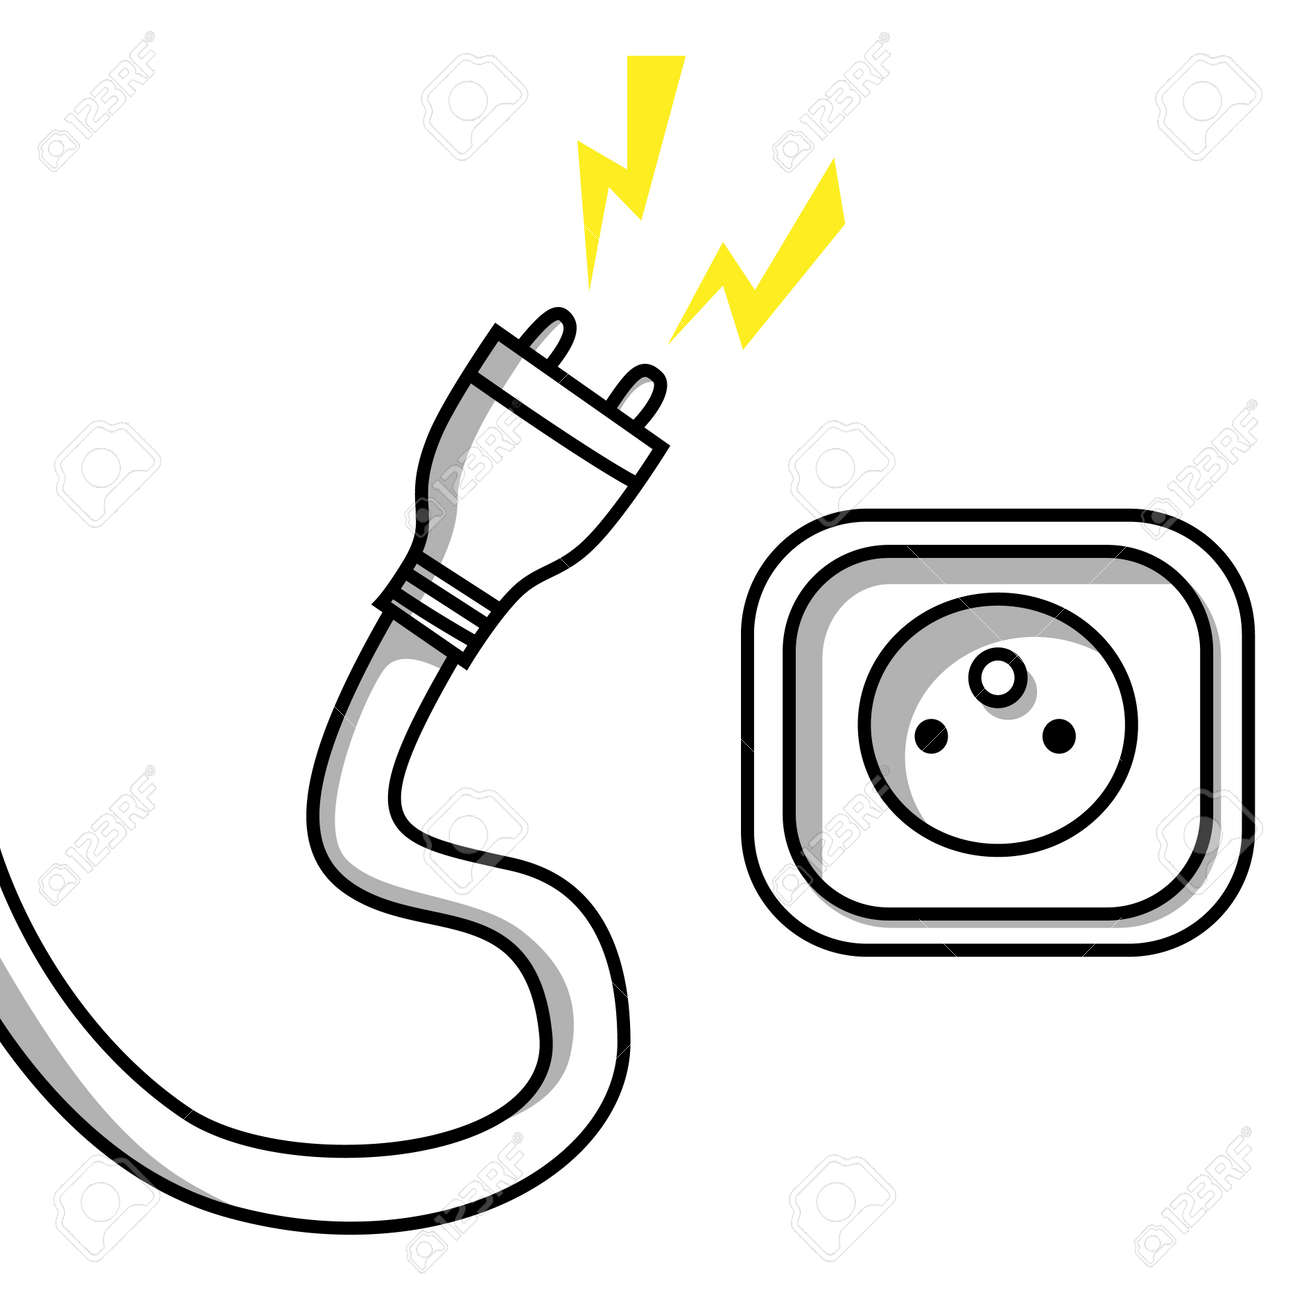 Unplugged Wire Cartoon Center Re Shovel Rigid Wiringneed A Diagram For Dummies Like Me Illustration Of An Cable And Socket Royalty Free Rh 123rf Com Lamp